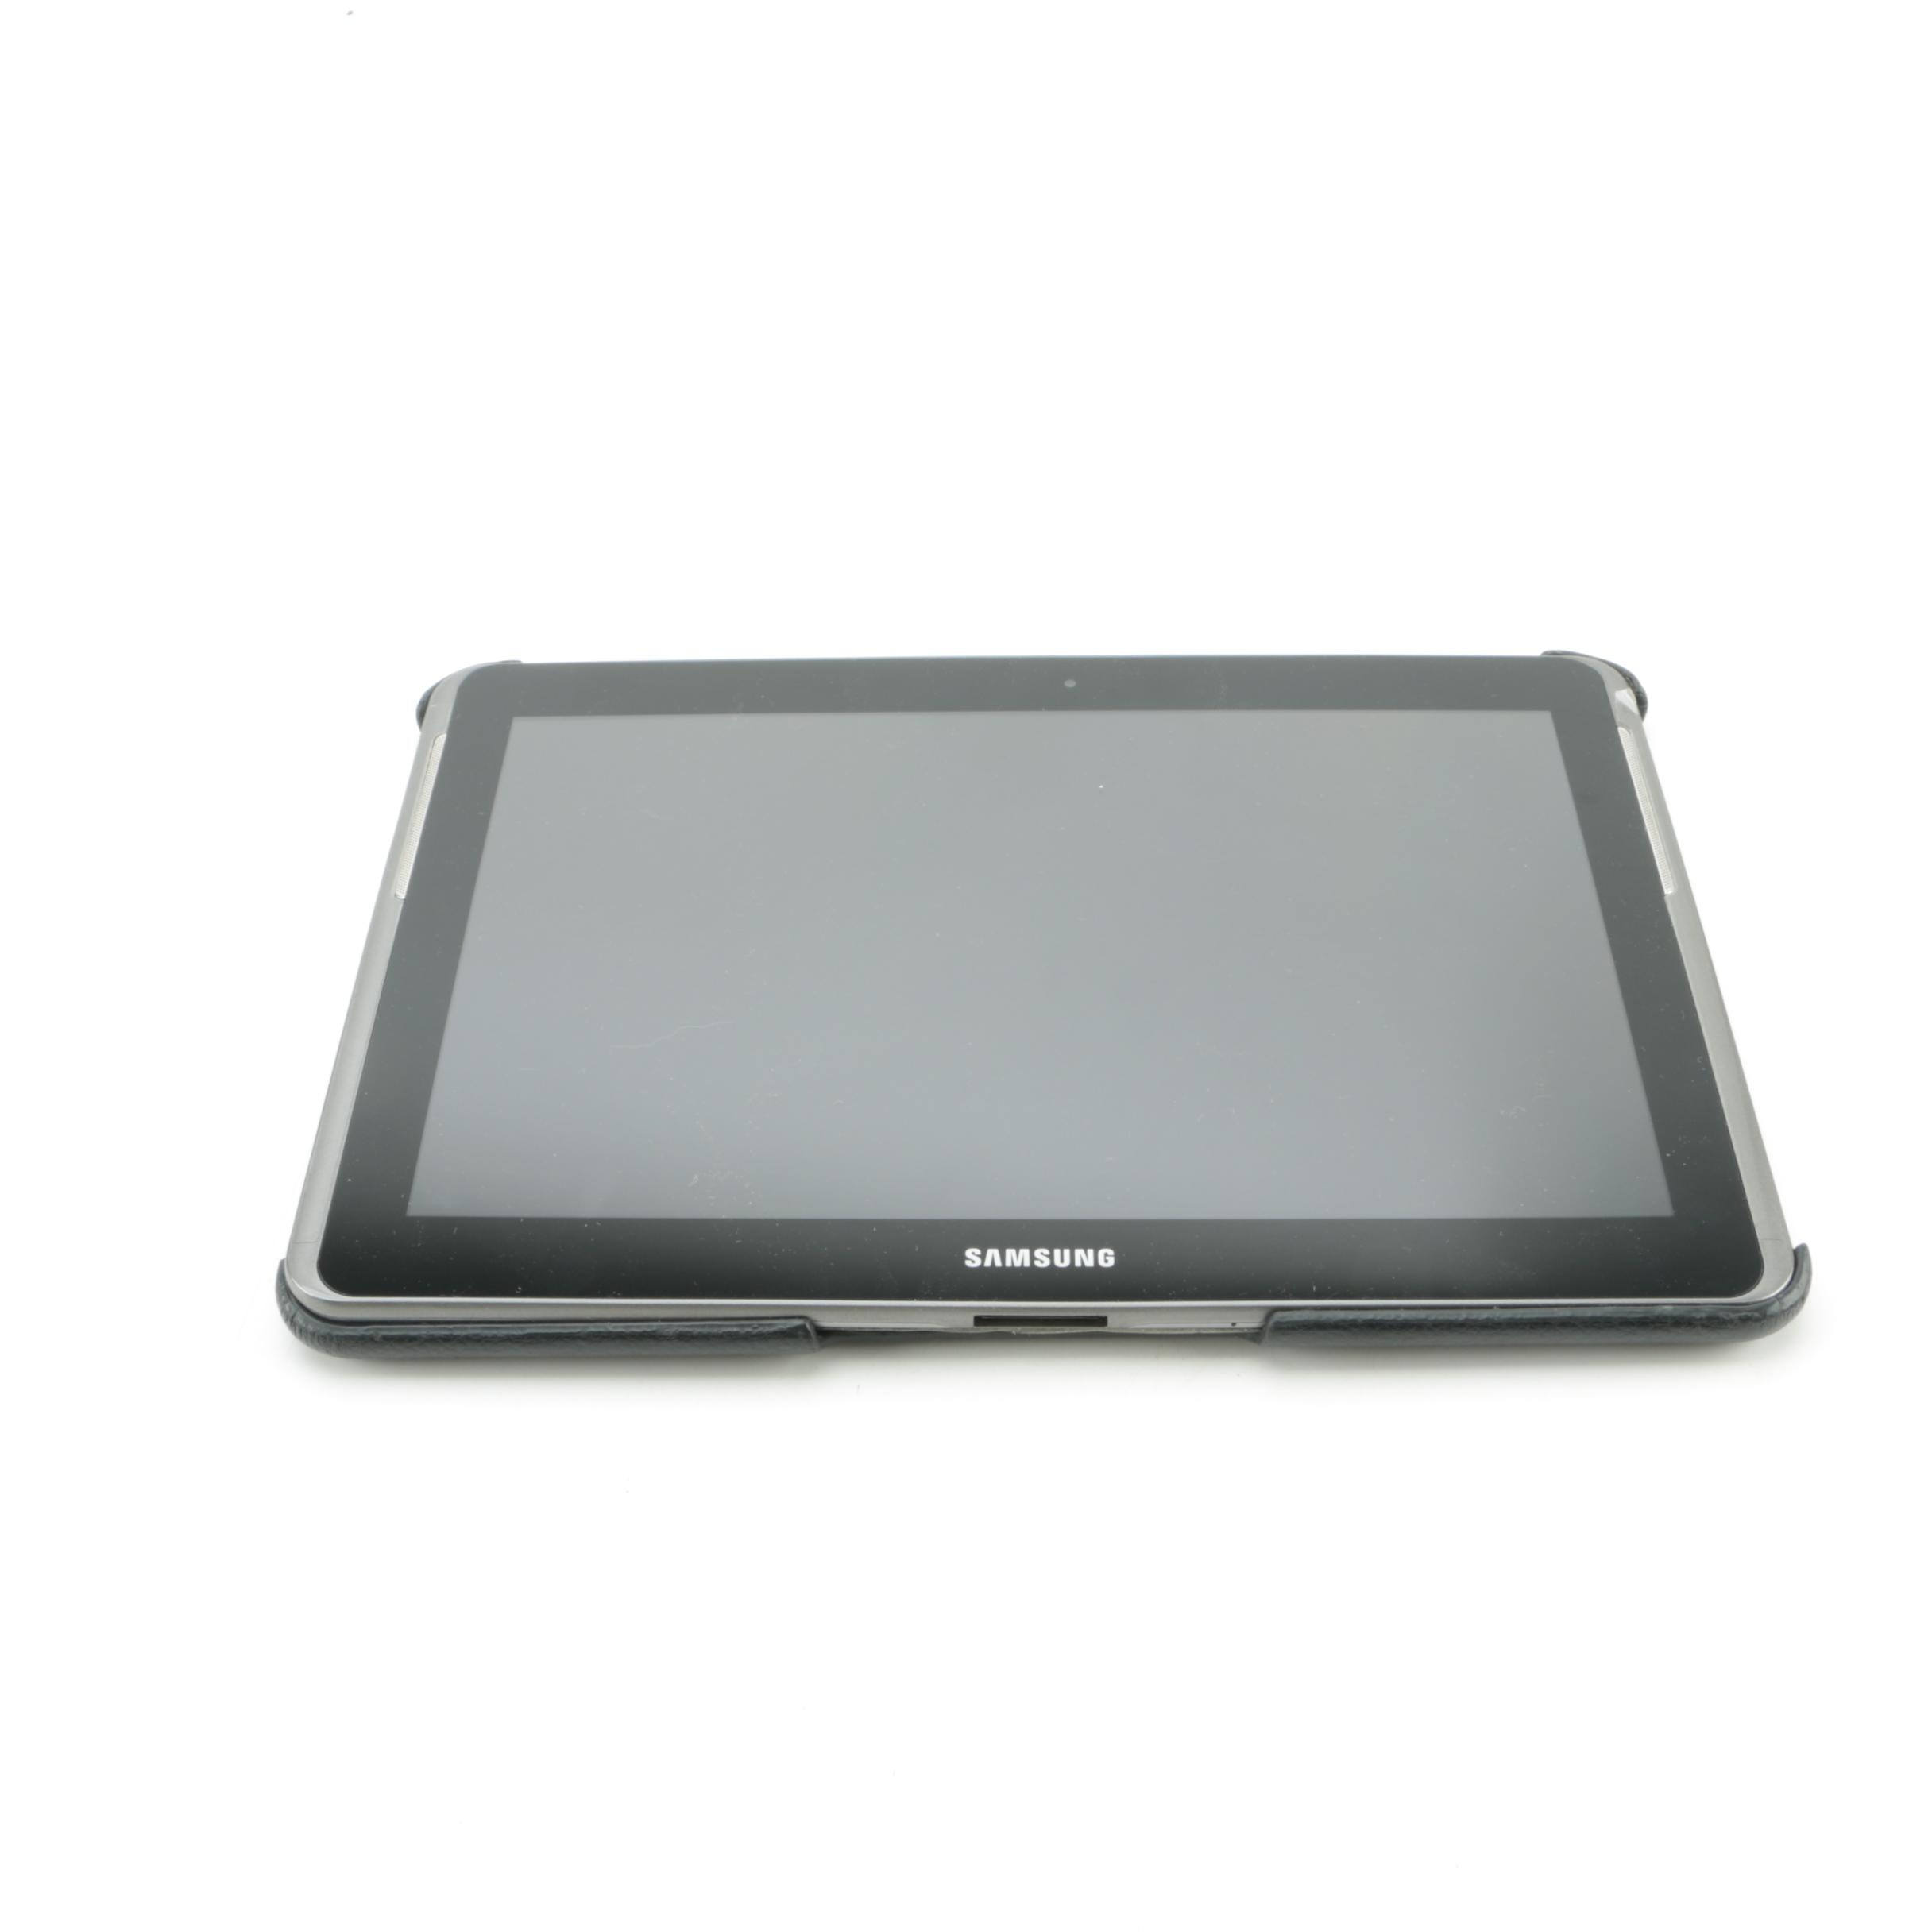 "Samsung 16 GB ""GT-P5113"" Model Tablet with Protective Backing"